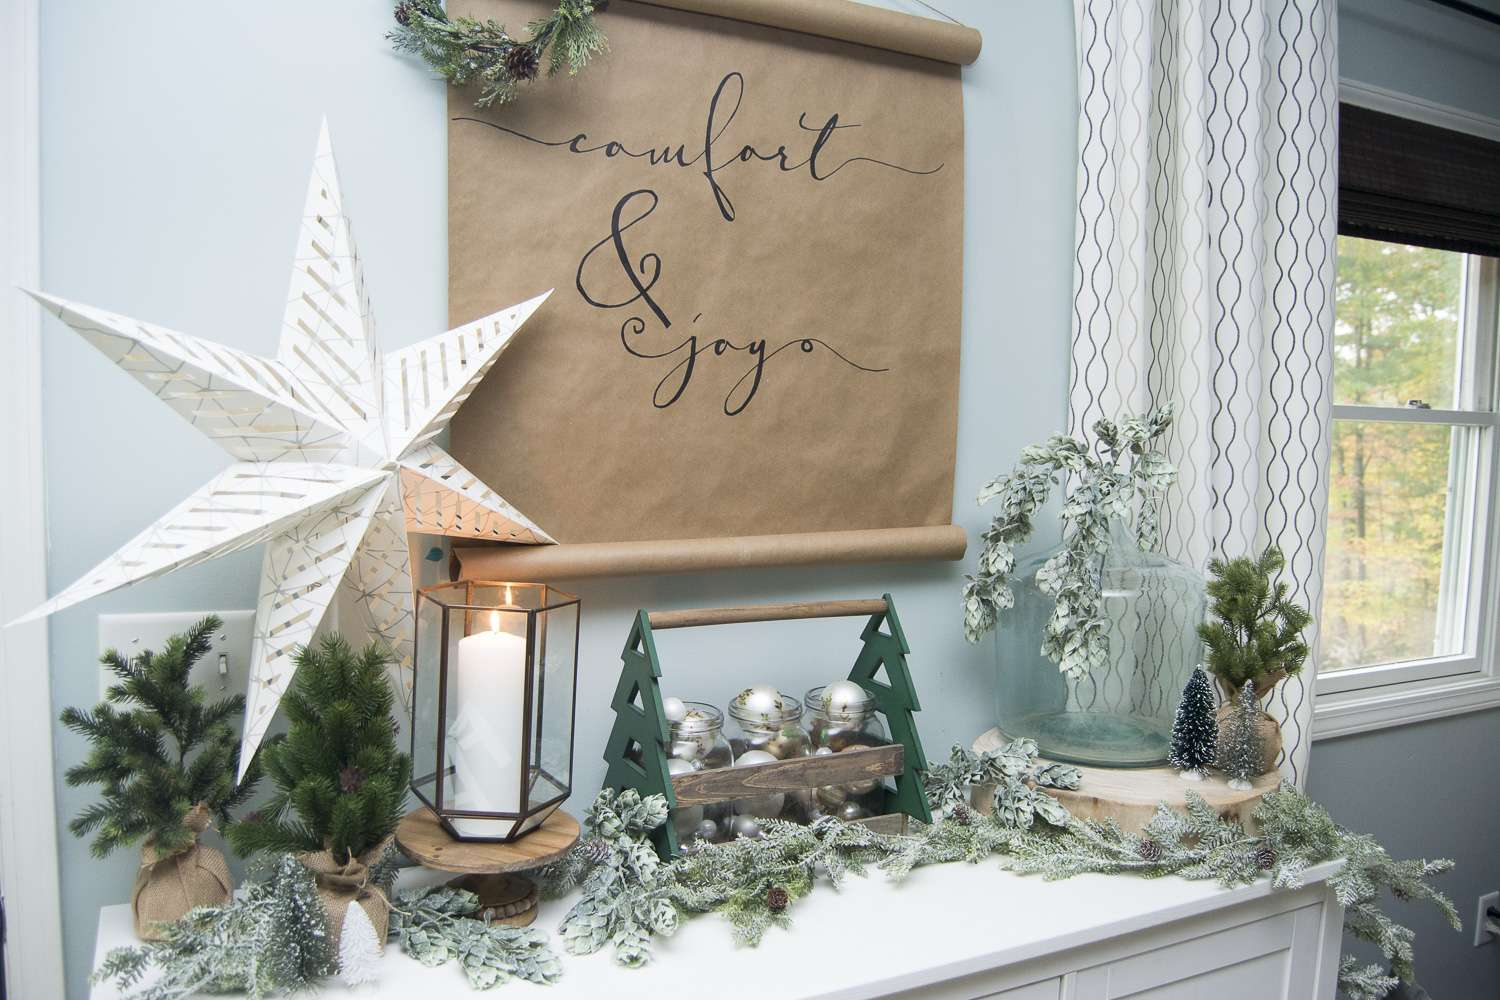 If you're looking for simple and affordable Christmas decor, look no further than this easy DIY Christmas scroll art! This project takes less than 1 hour!